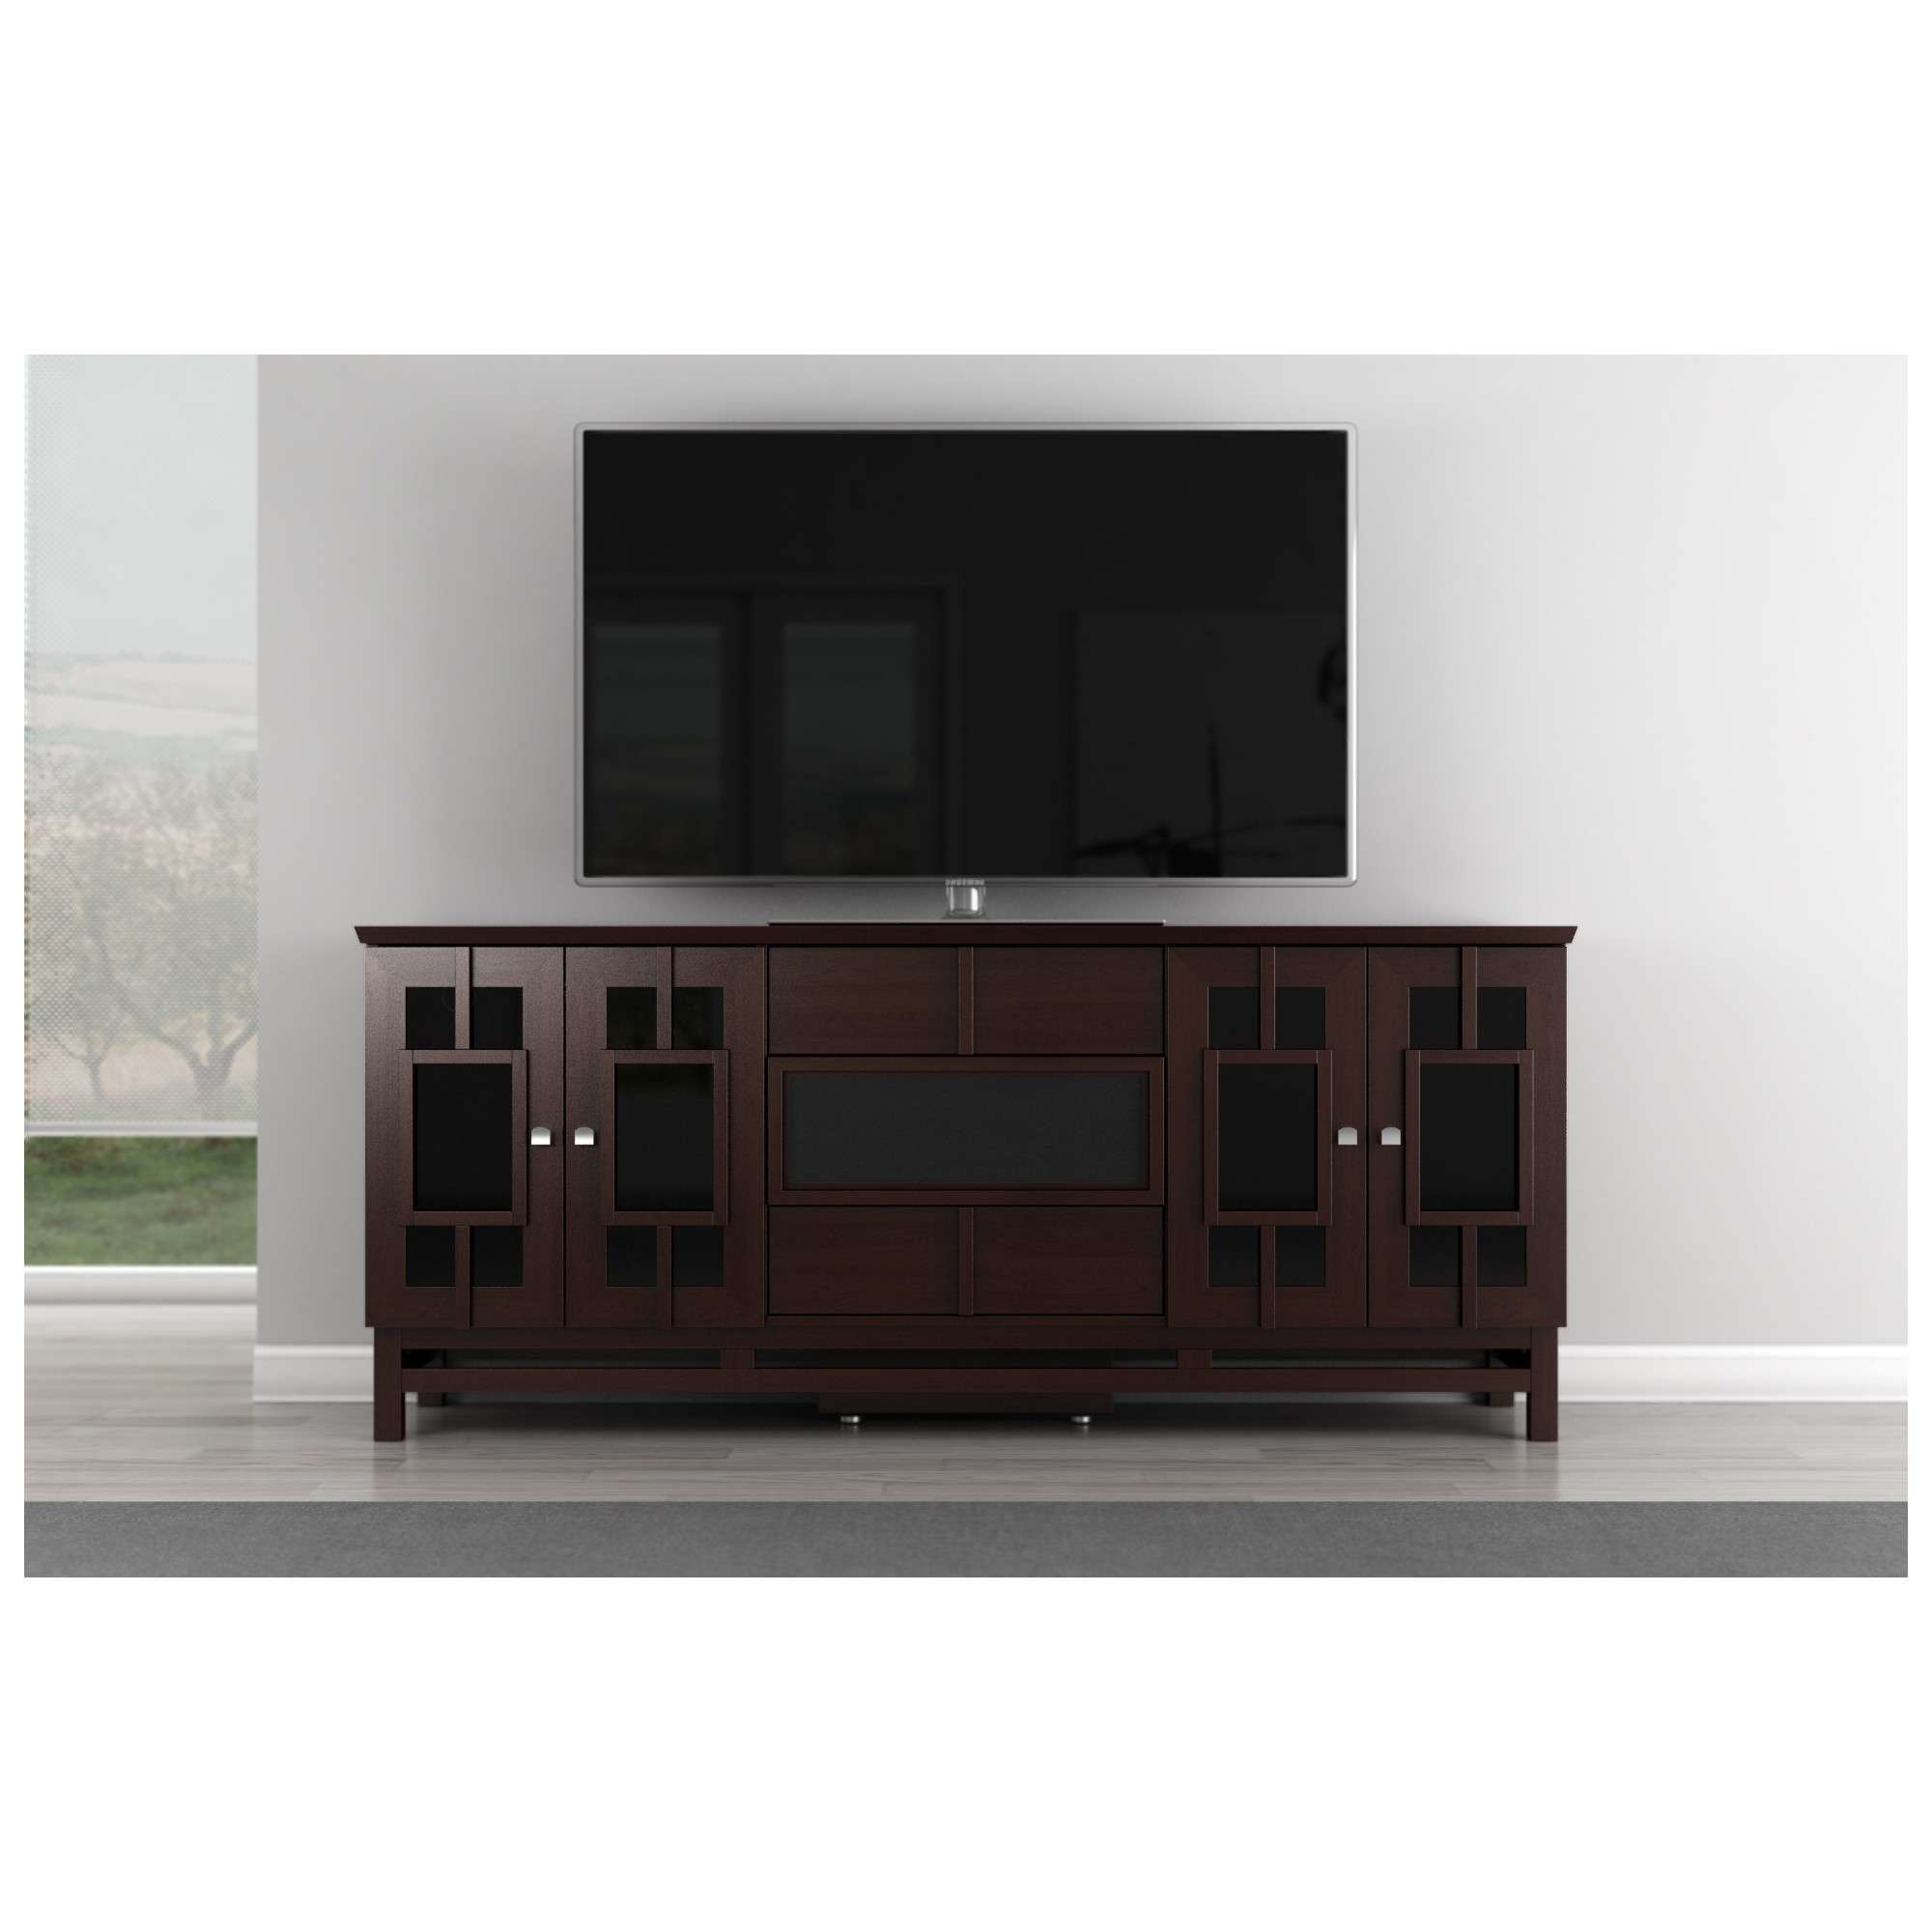 "Furnitech Ft72Acw 70"" Tv Stand Asian Inspired Media Cabinet W Throughout Asian Tv Cabinets (View 7 of 20)"